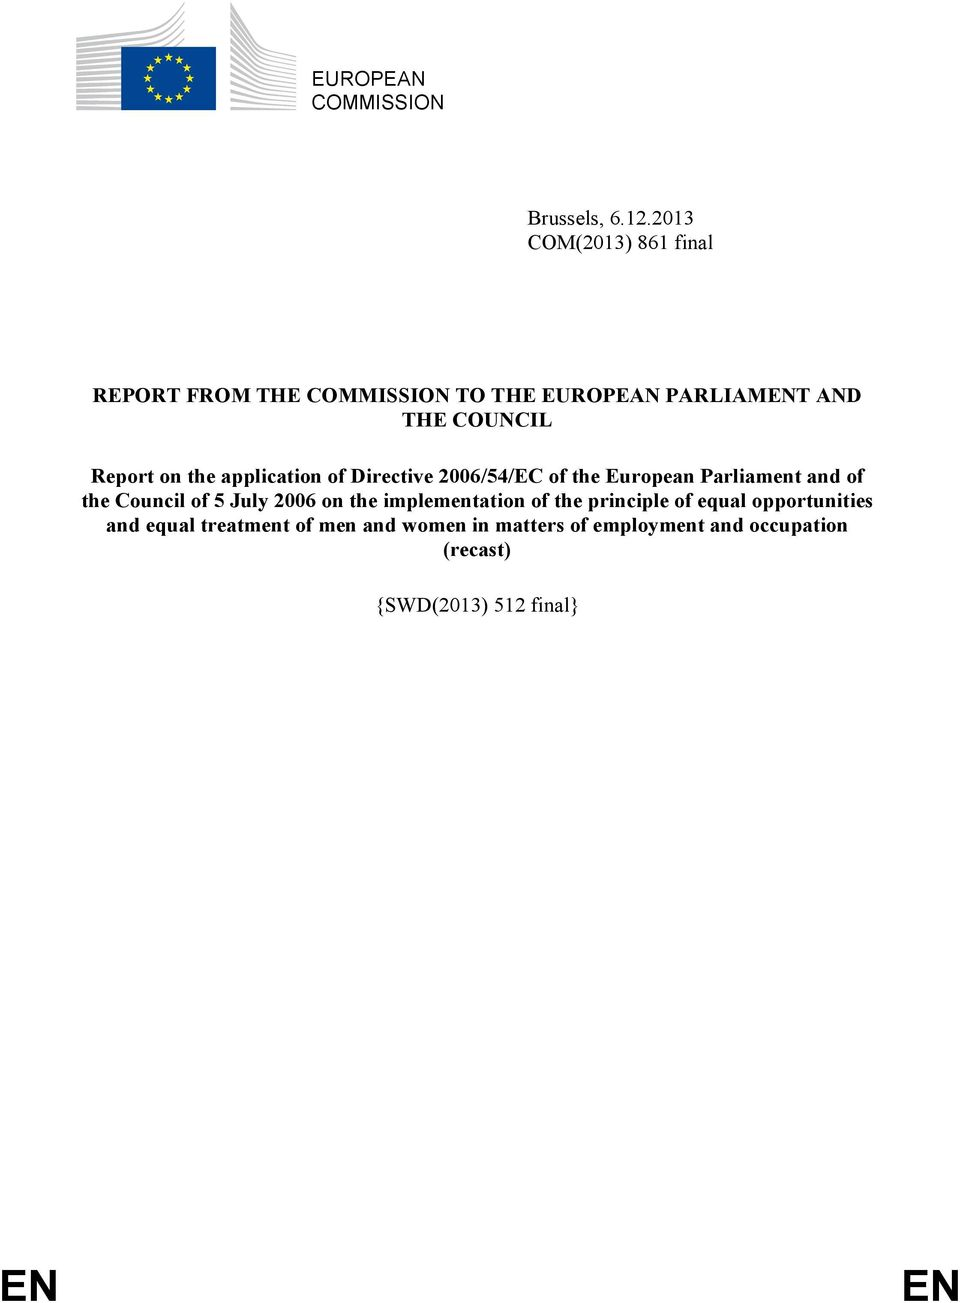 on the application of Directive 2006/54/EC of the European Parliament and of the Council of 5 July 2006